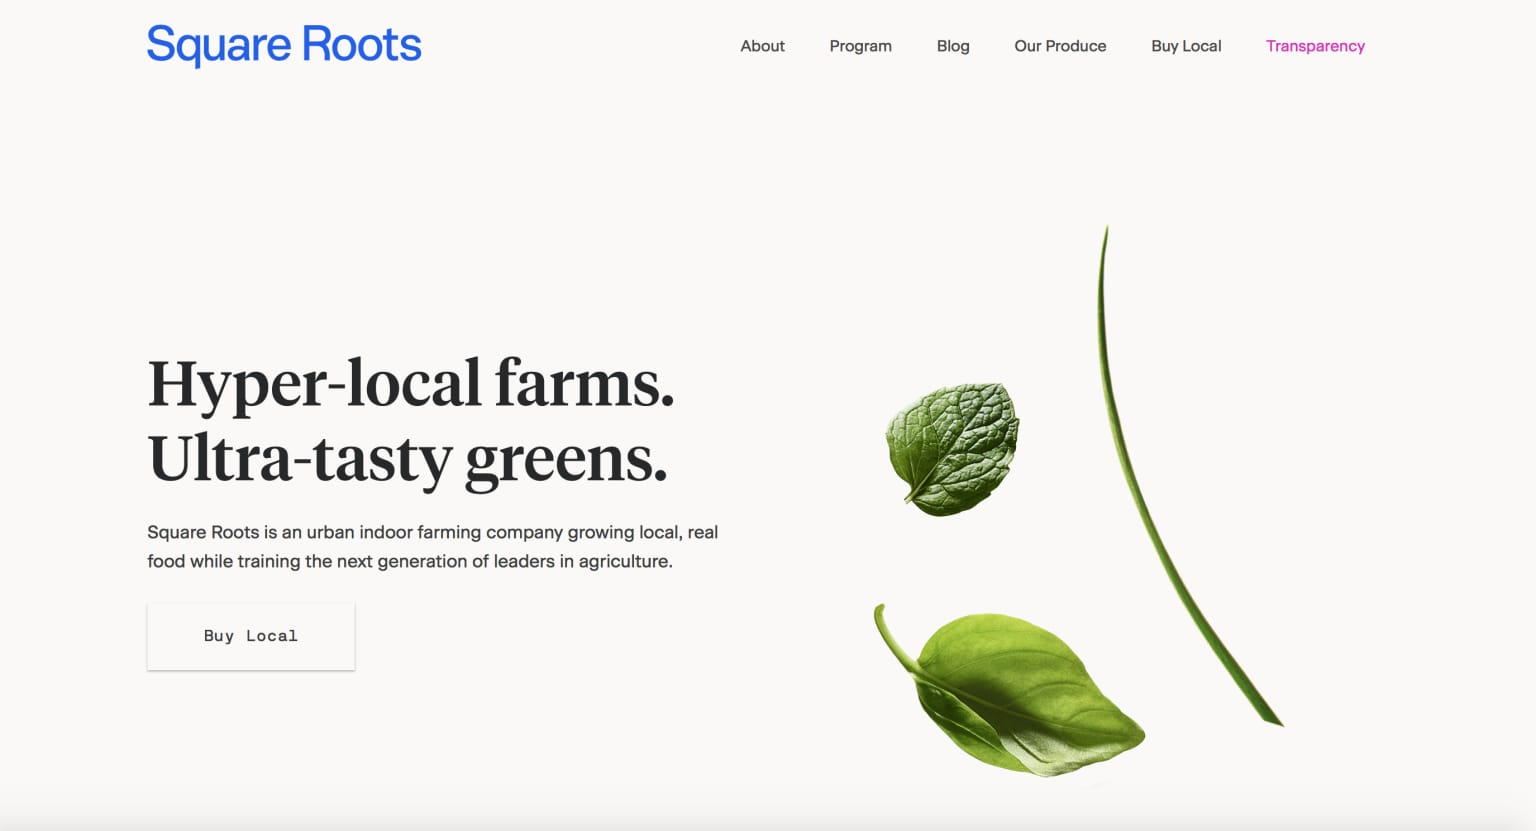 Square Roots//Web Copy & Editorial Content